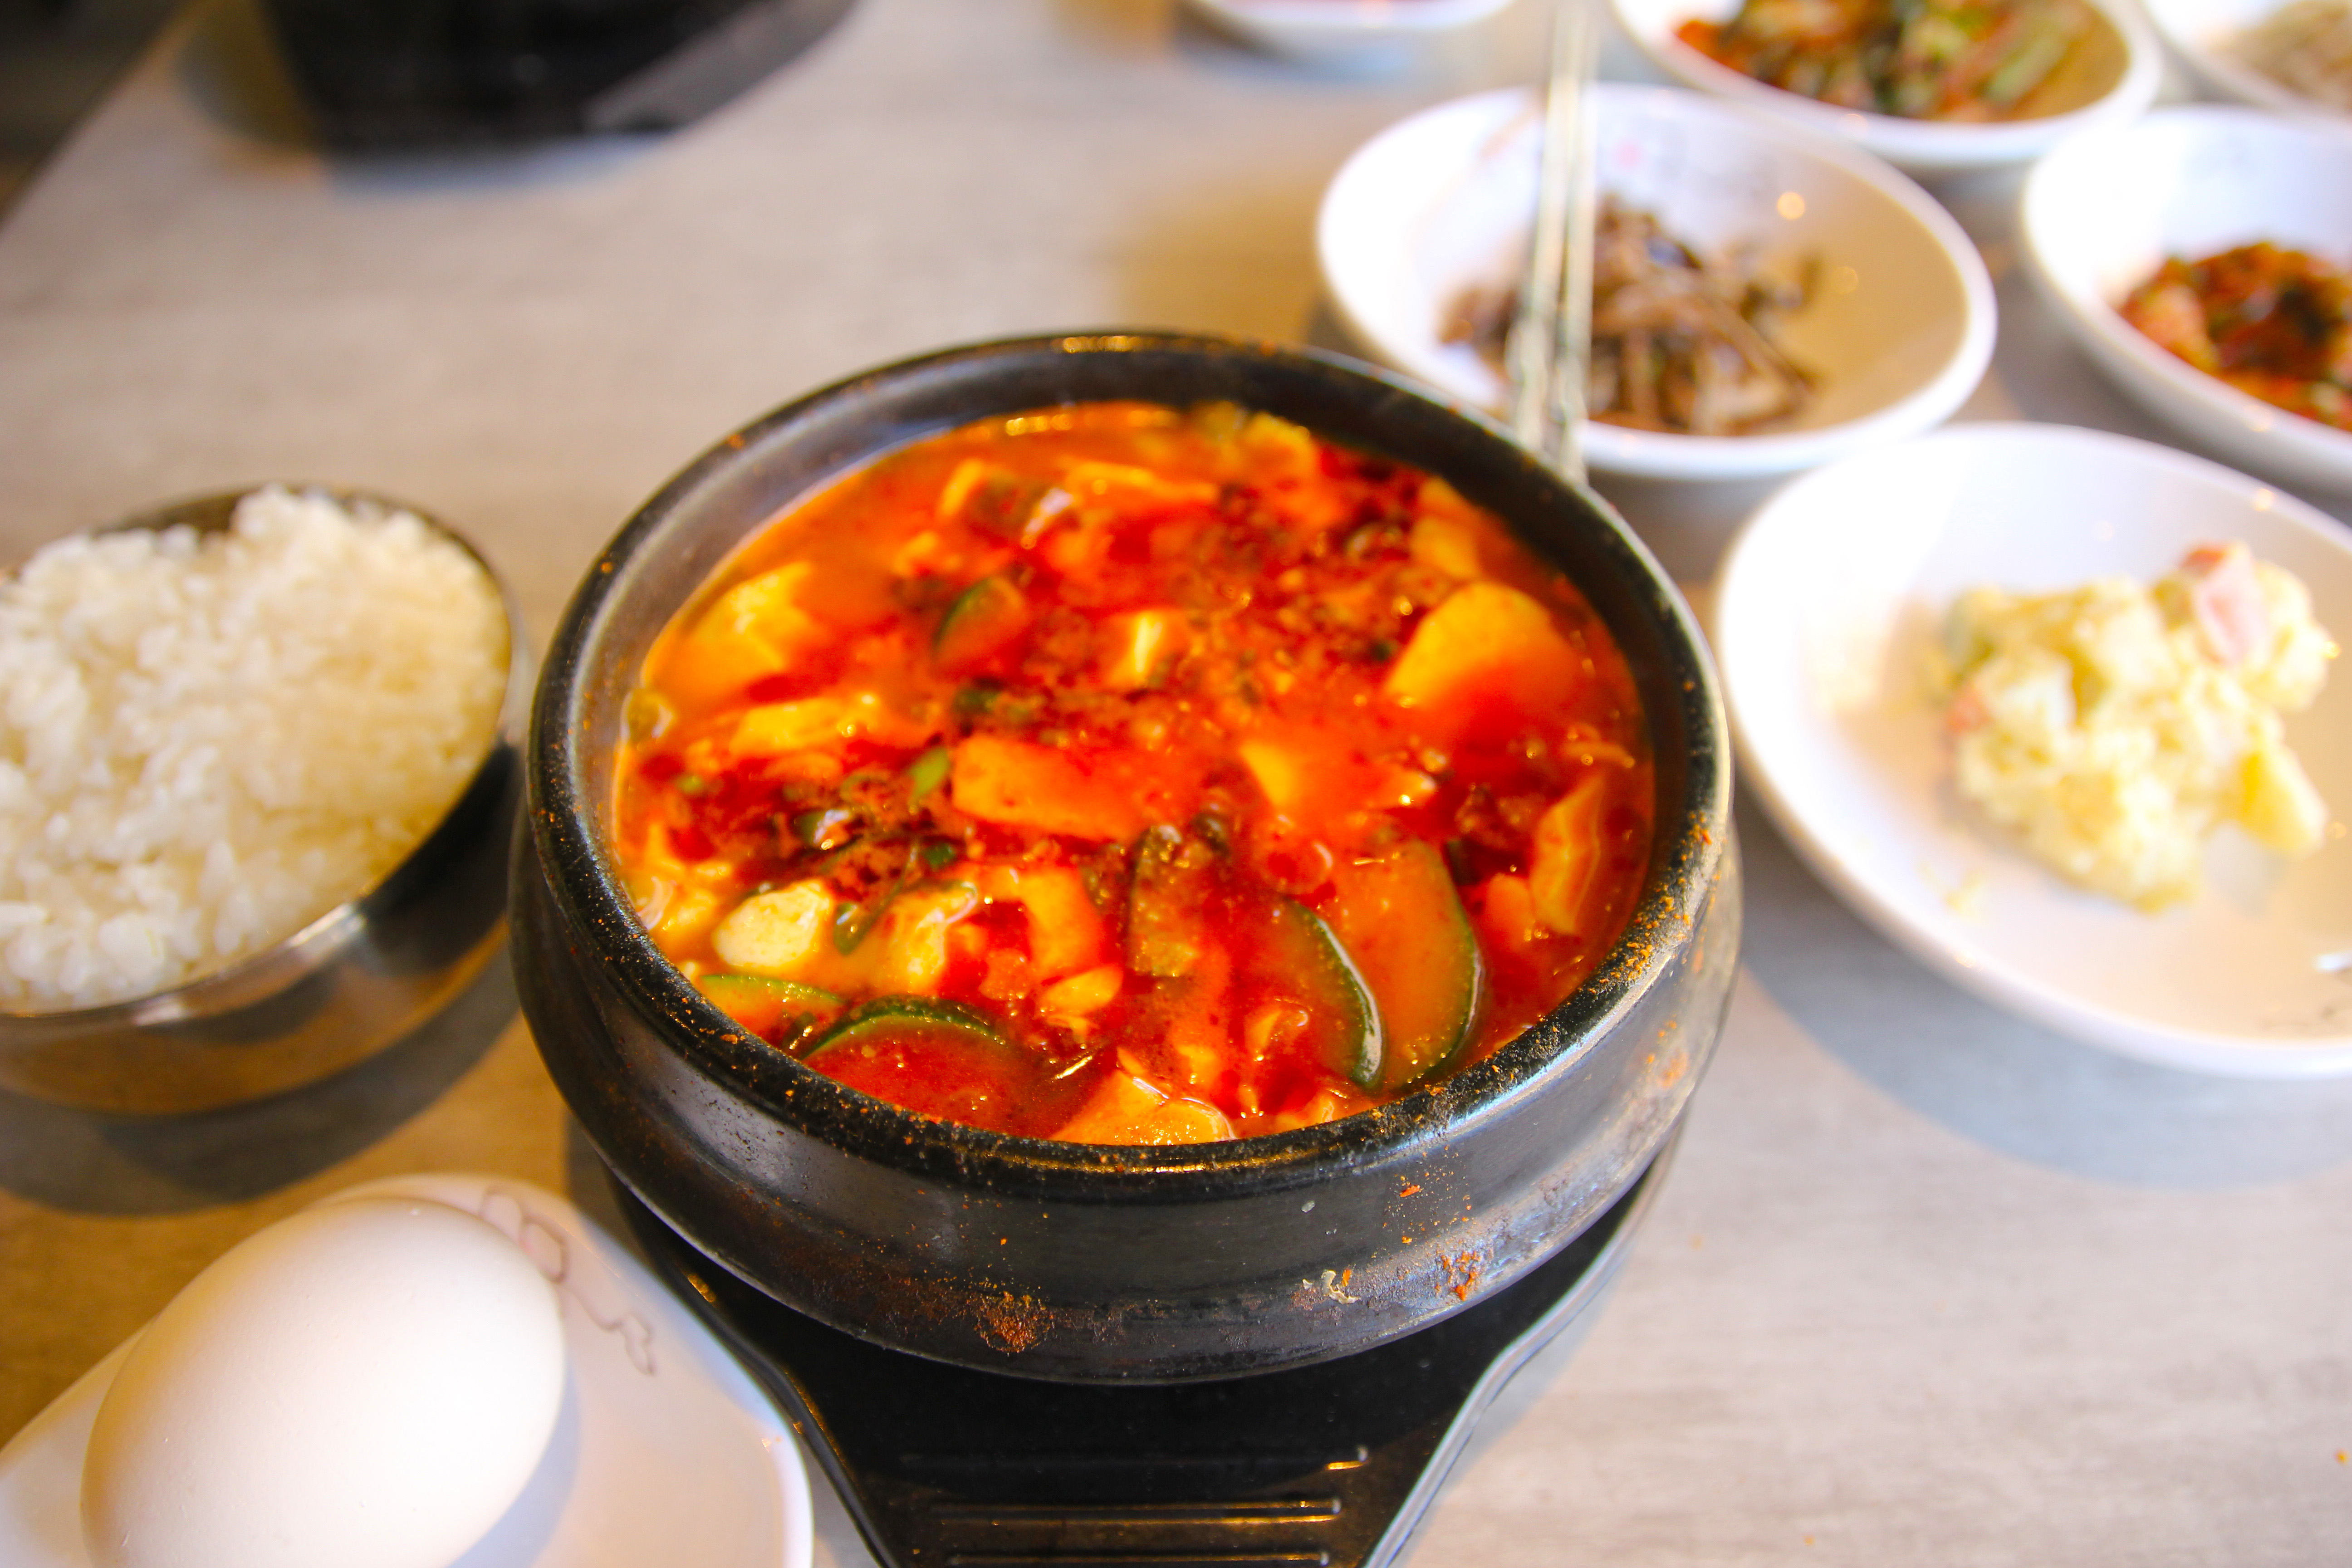 Jjigae and assorted banchan at Dae Bak, 1026 Race St., Second Floor.